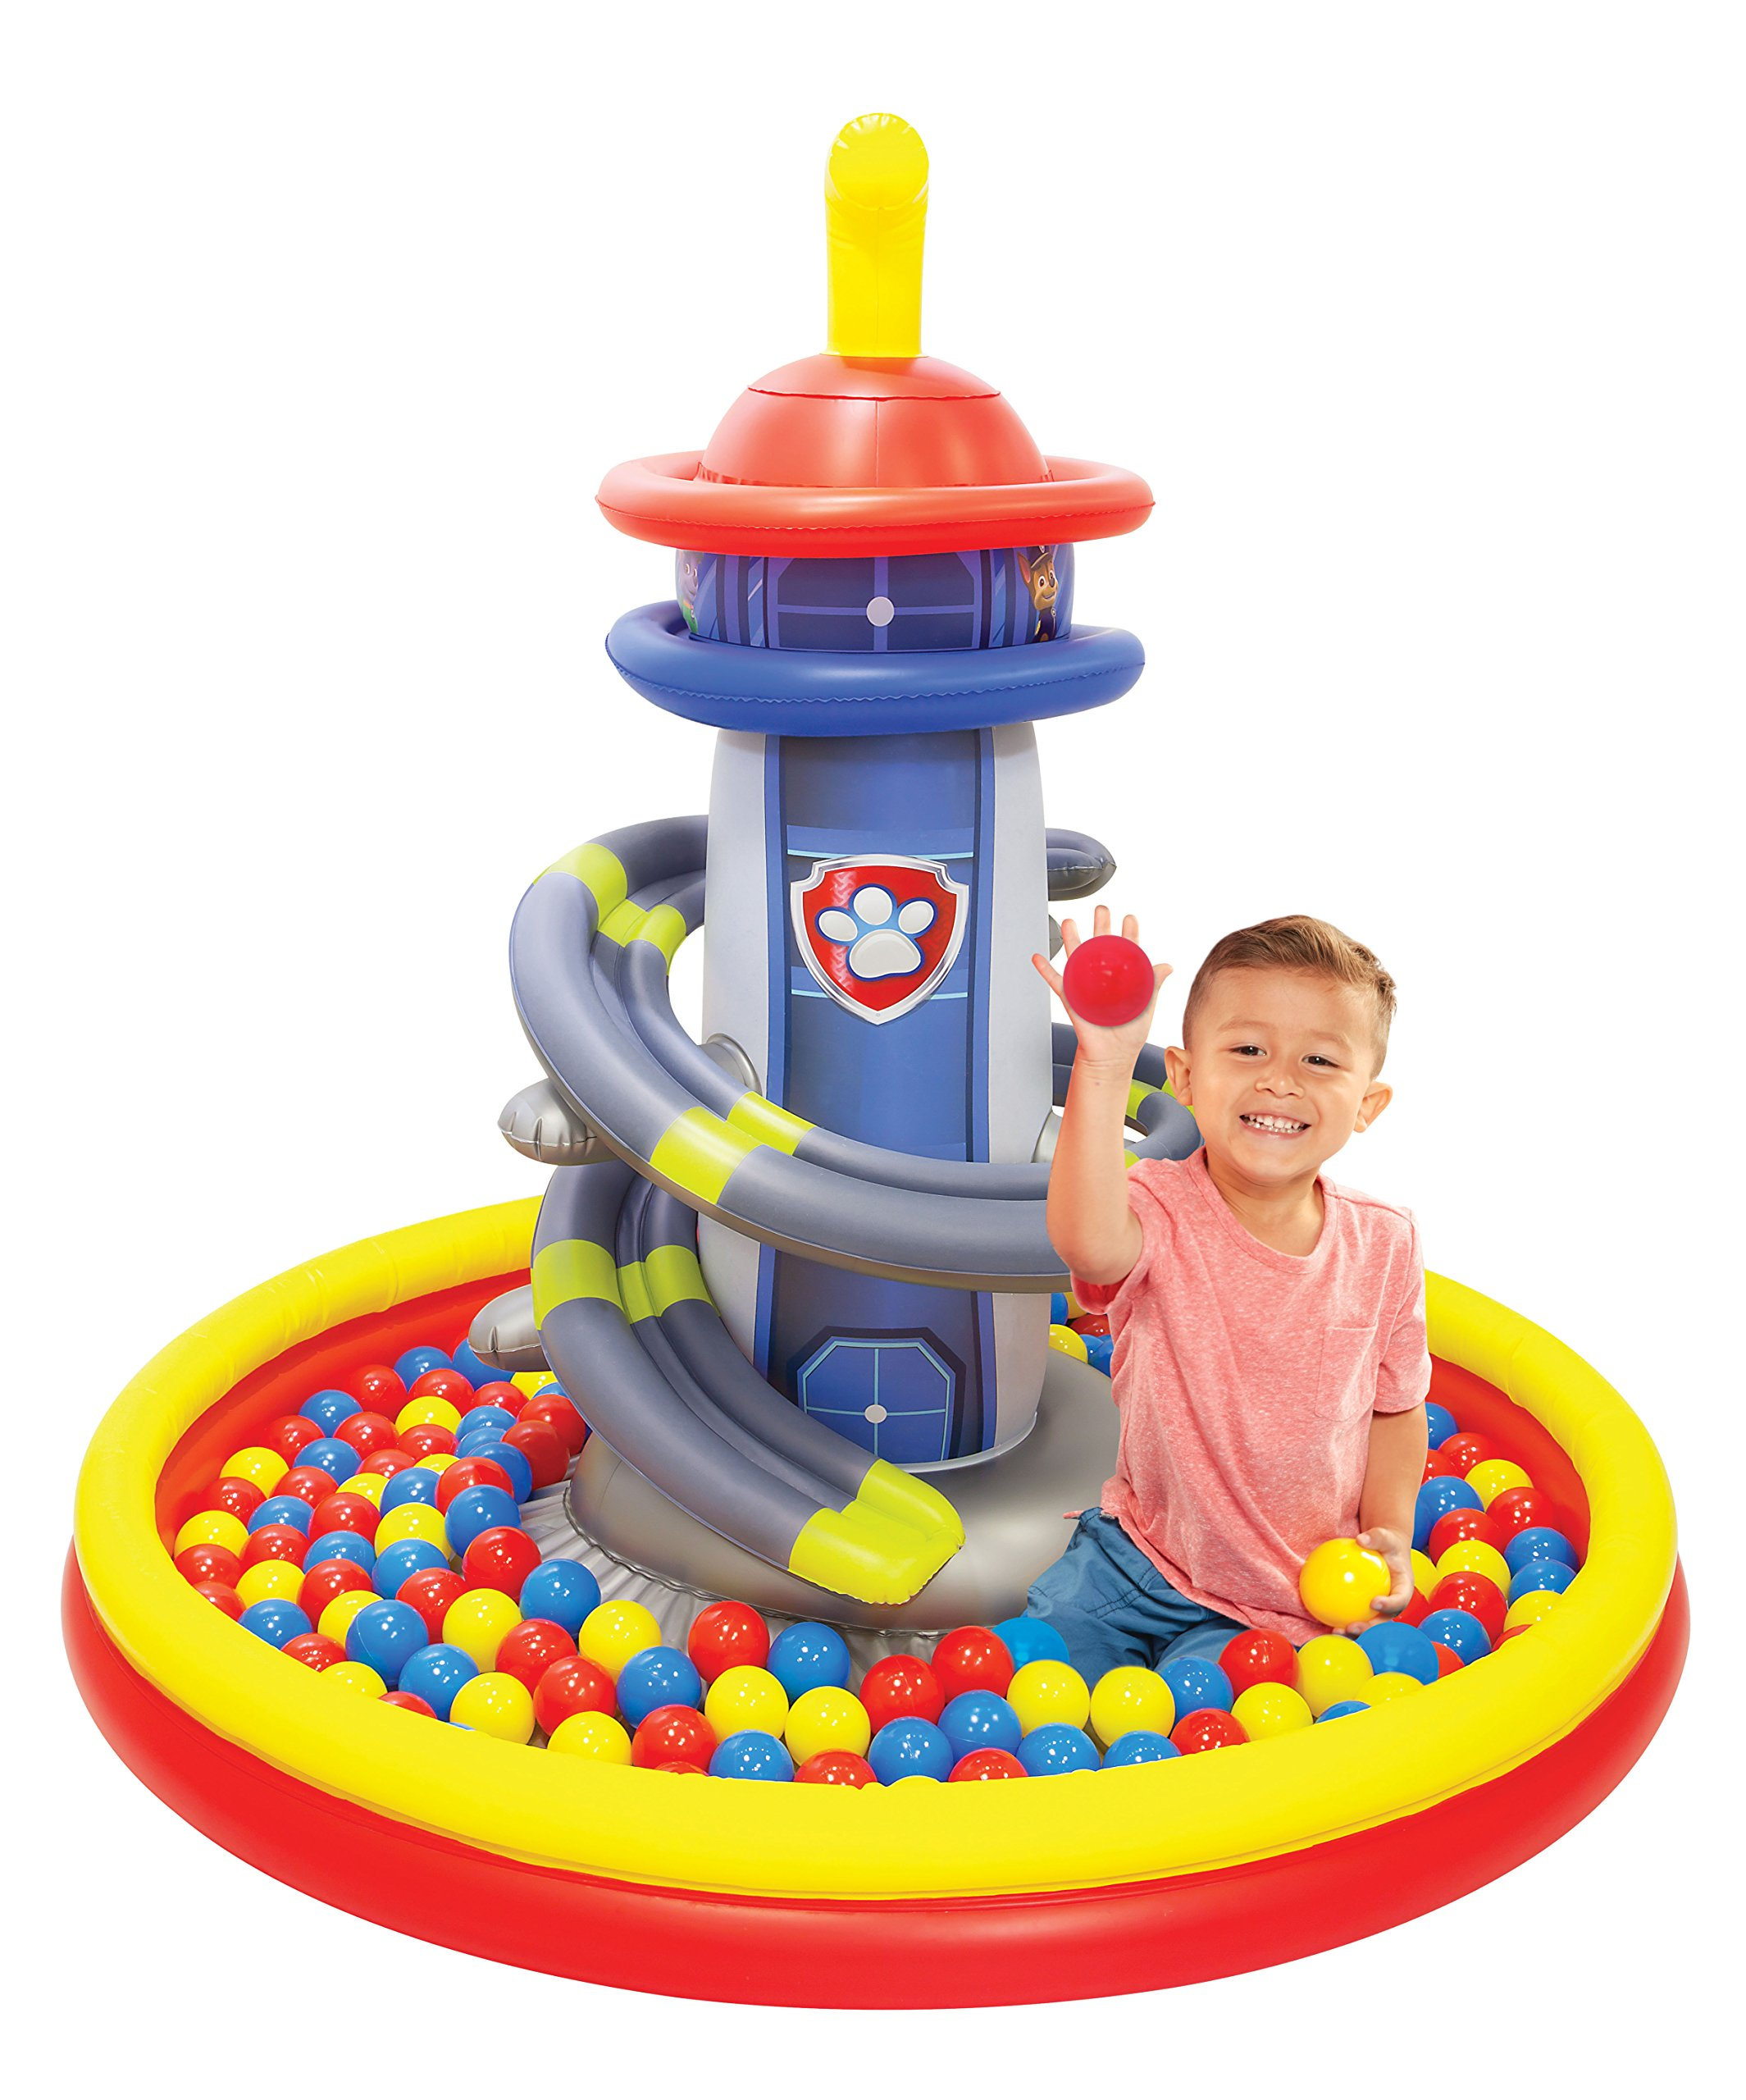 Paw Patrol Lookout Tower Ball Pit, 1 Inflatable & 50 Sof-Flex Balls, Blue/Red, 43''W x 43''D x 38''H